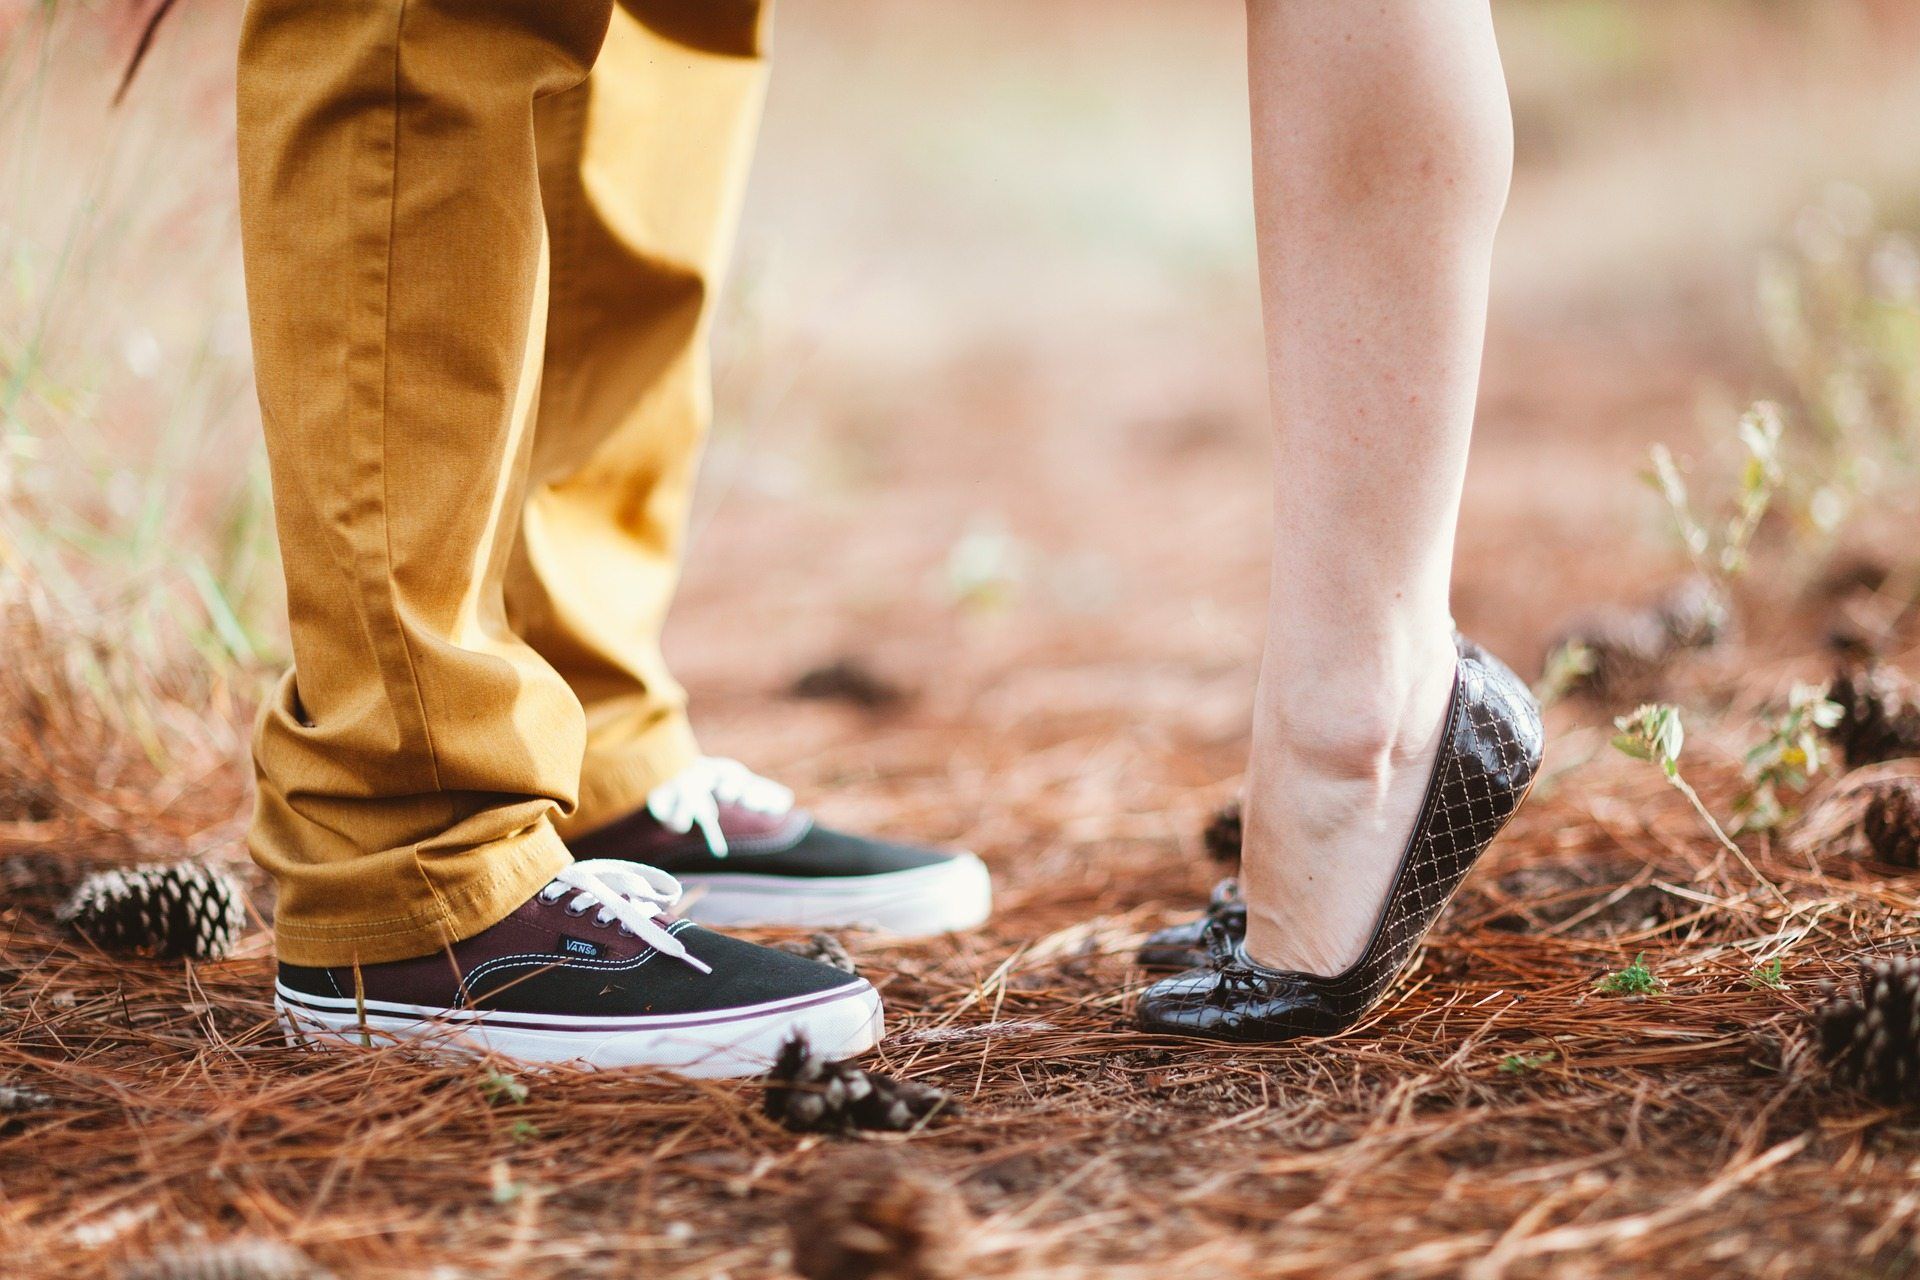 Christians marrying young Pixabay feet-1779064_1920